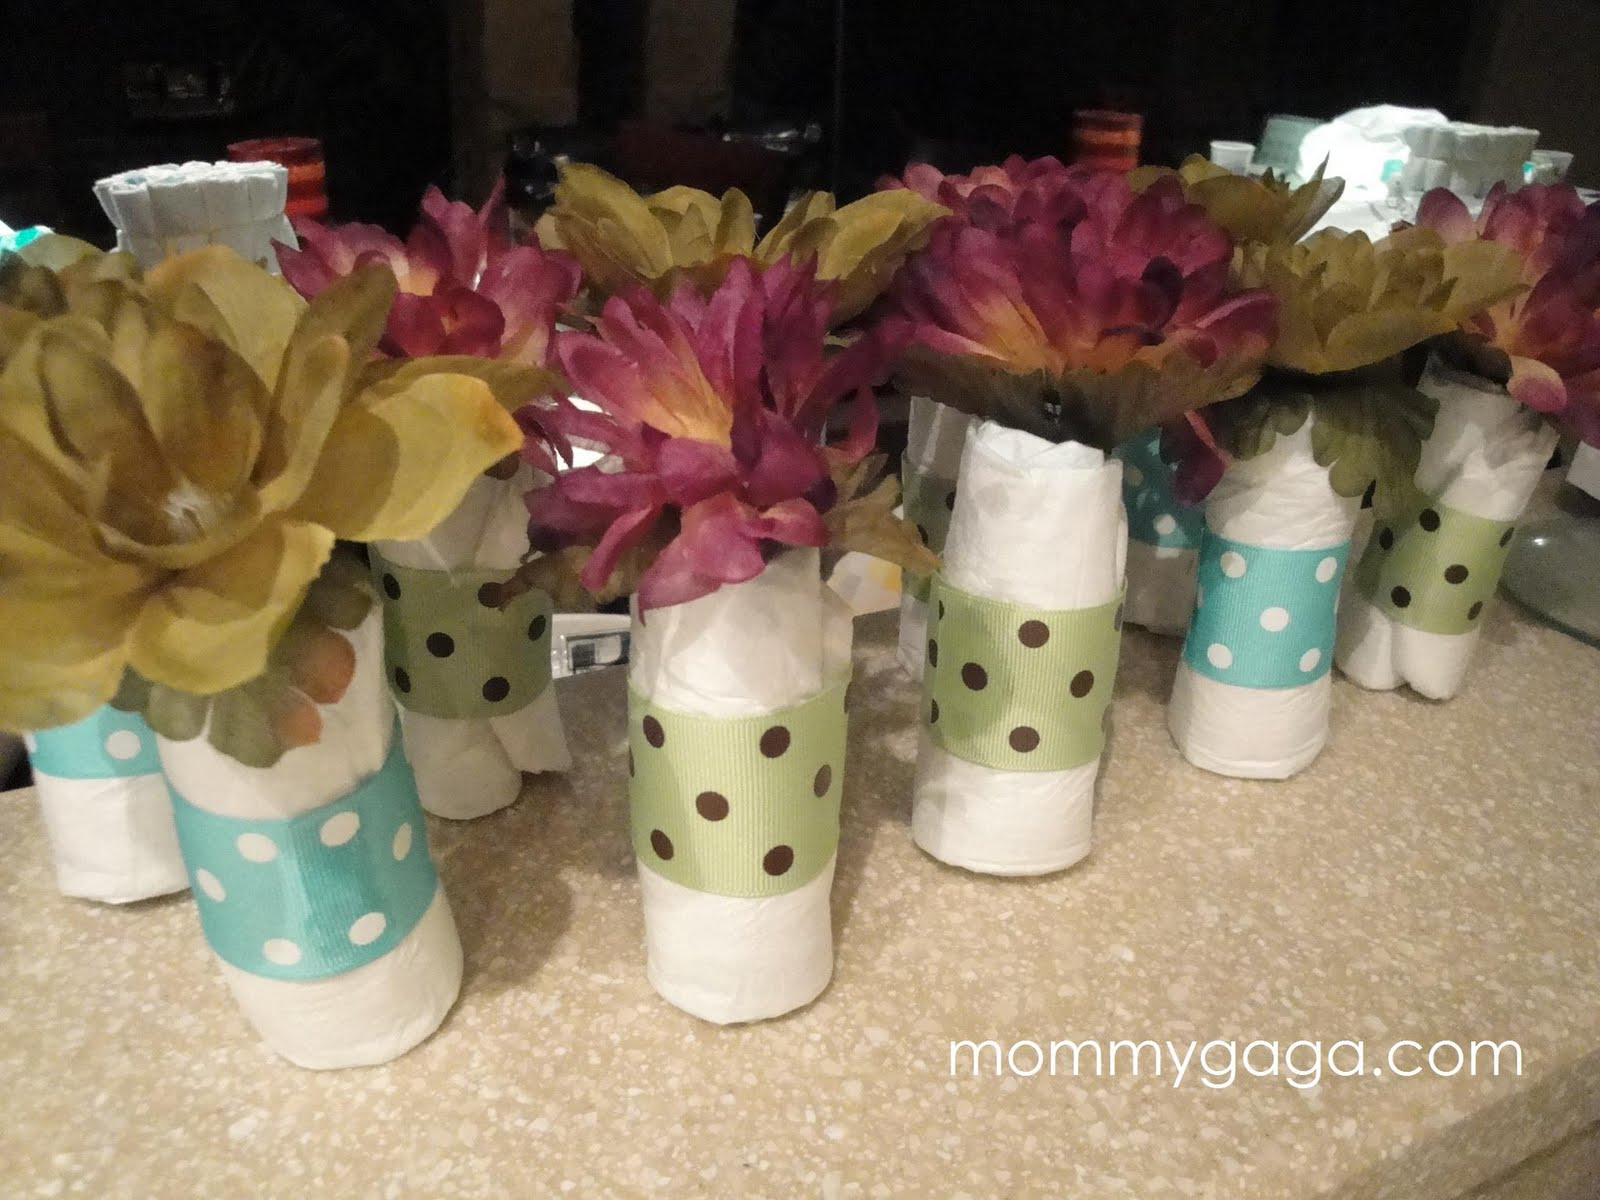 Looking for baby shower